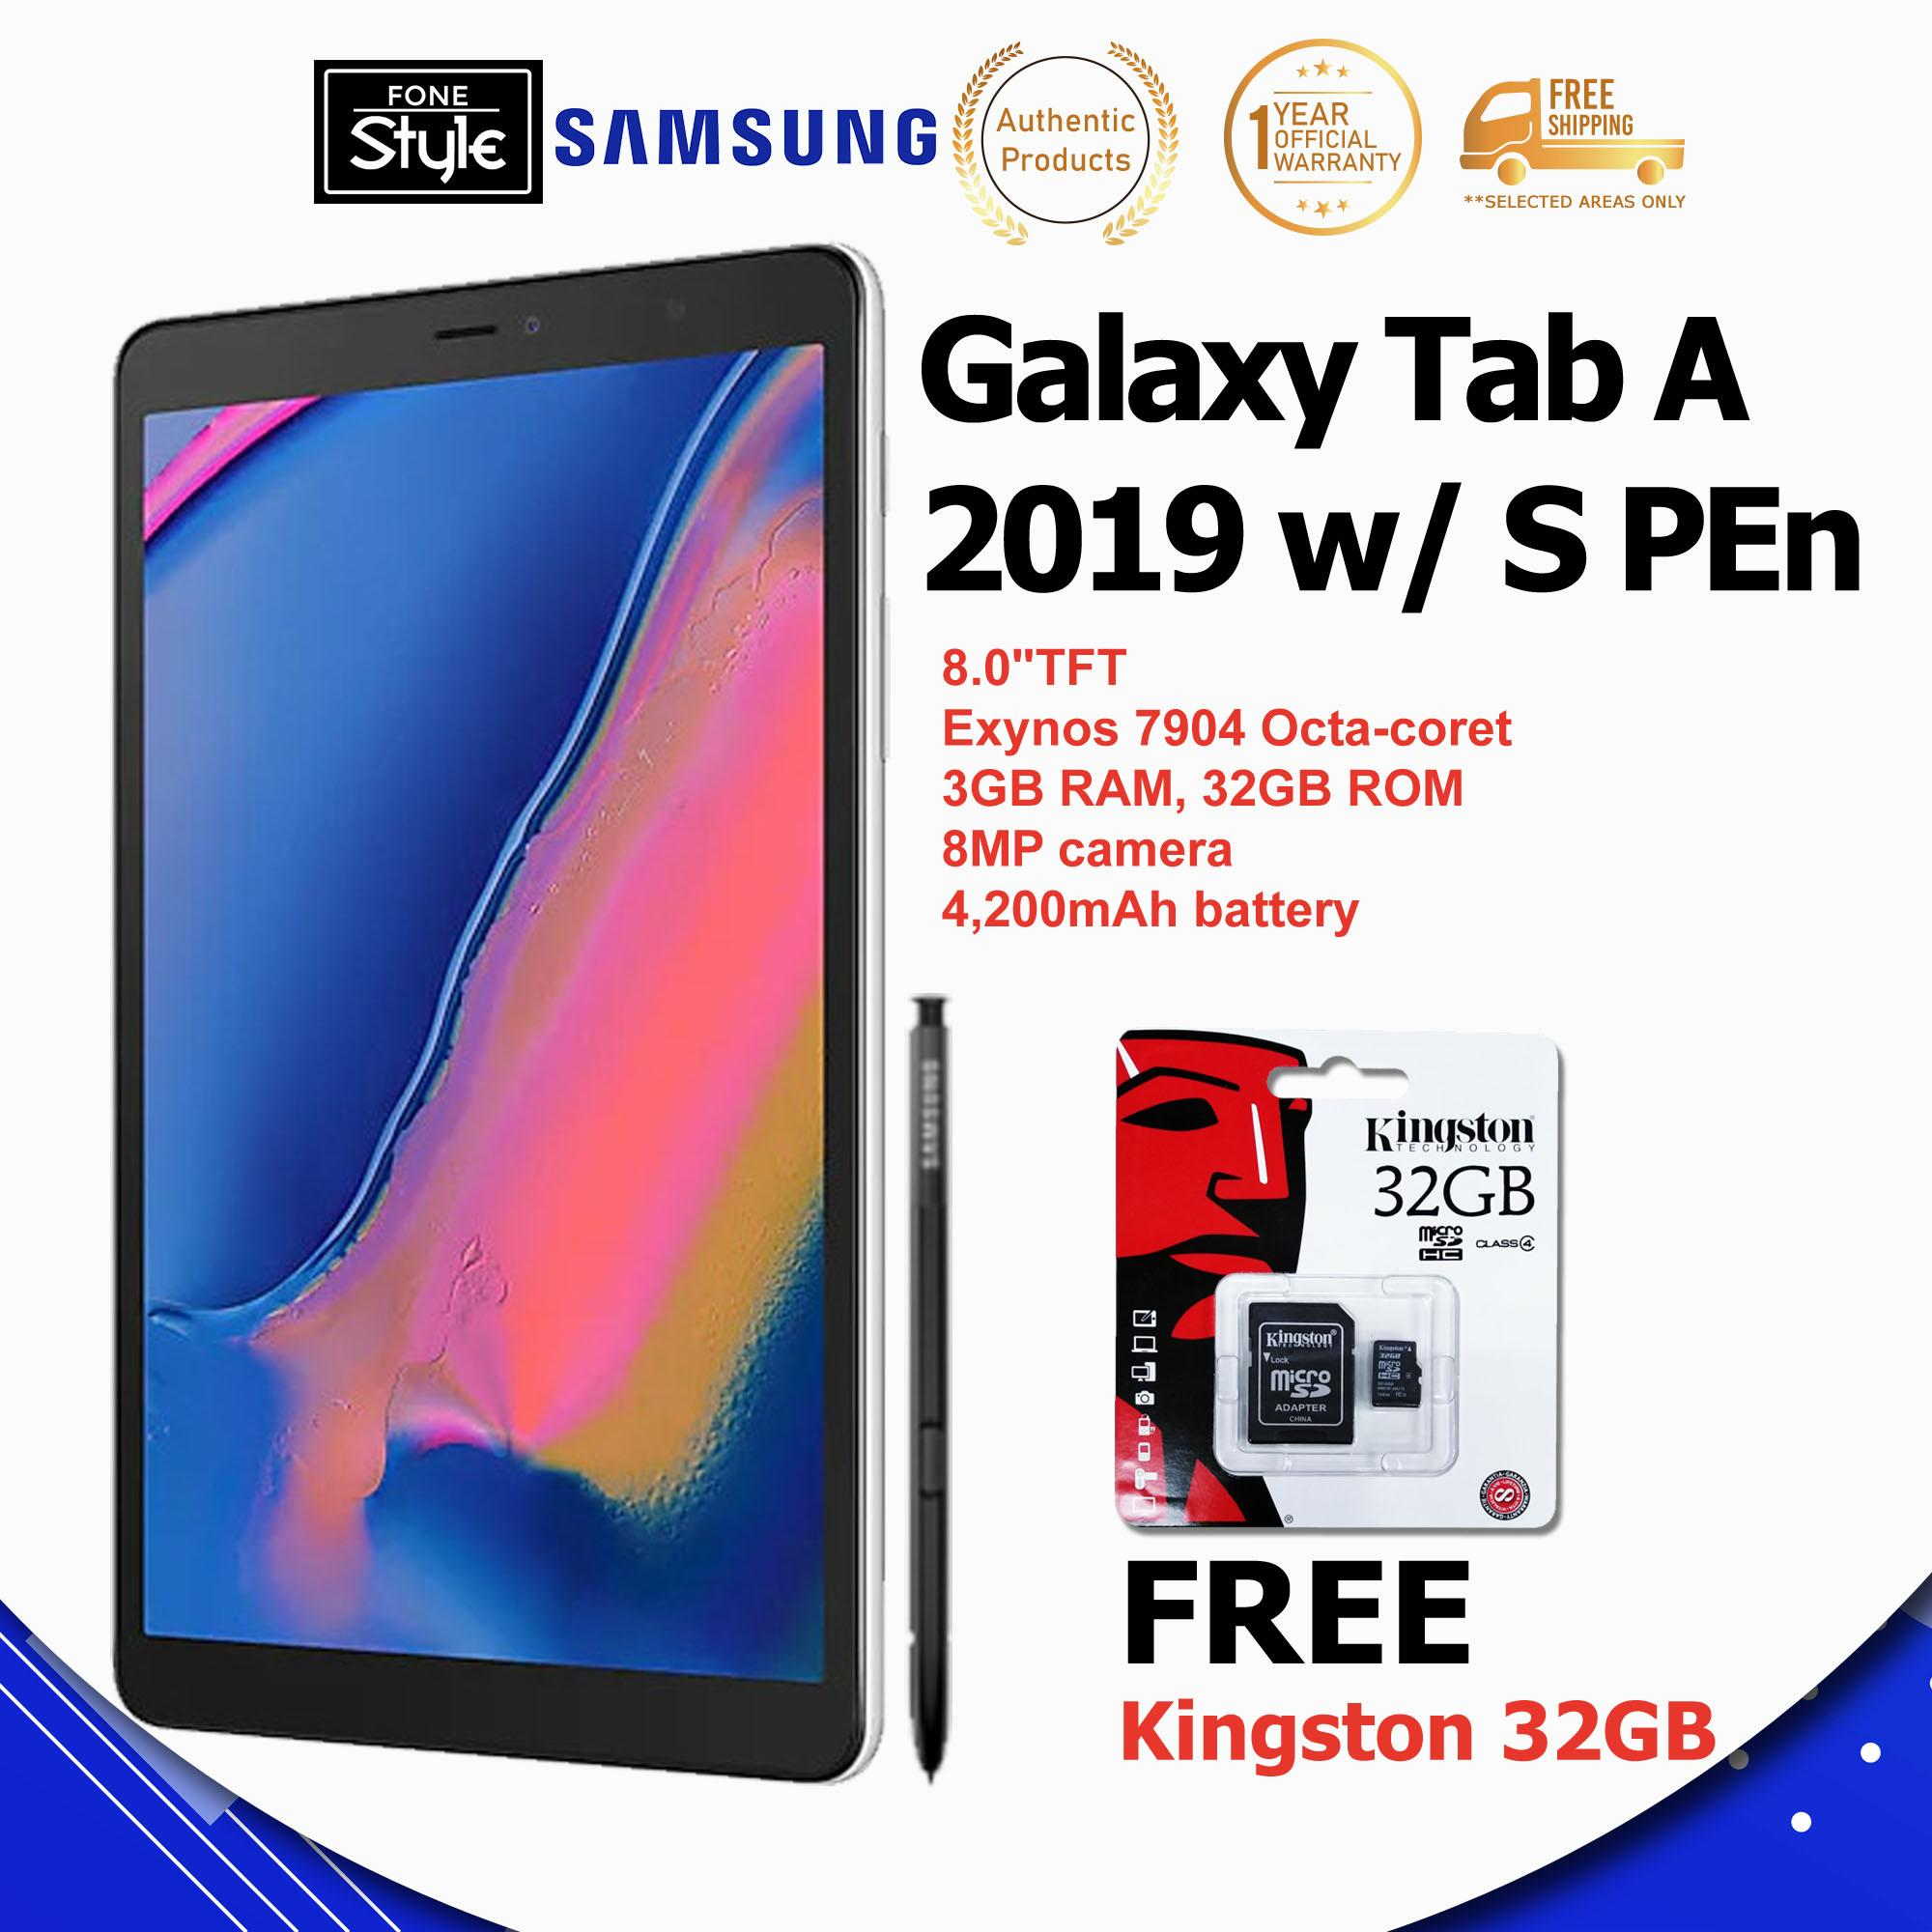 Samsung Tablet Philippines - Samsung Mobile Tablet for sale